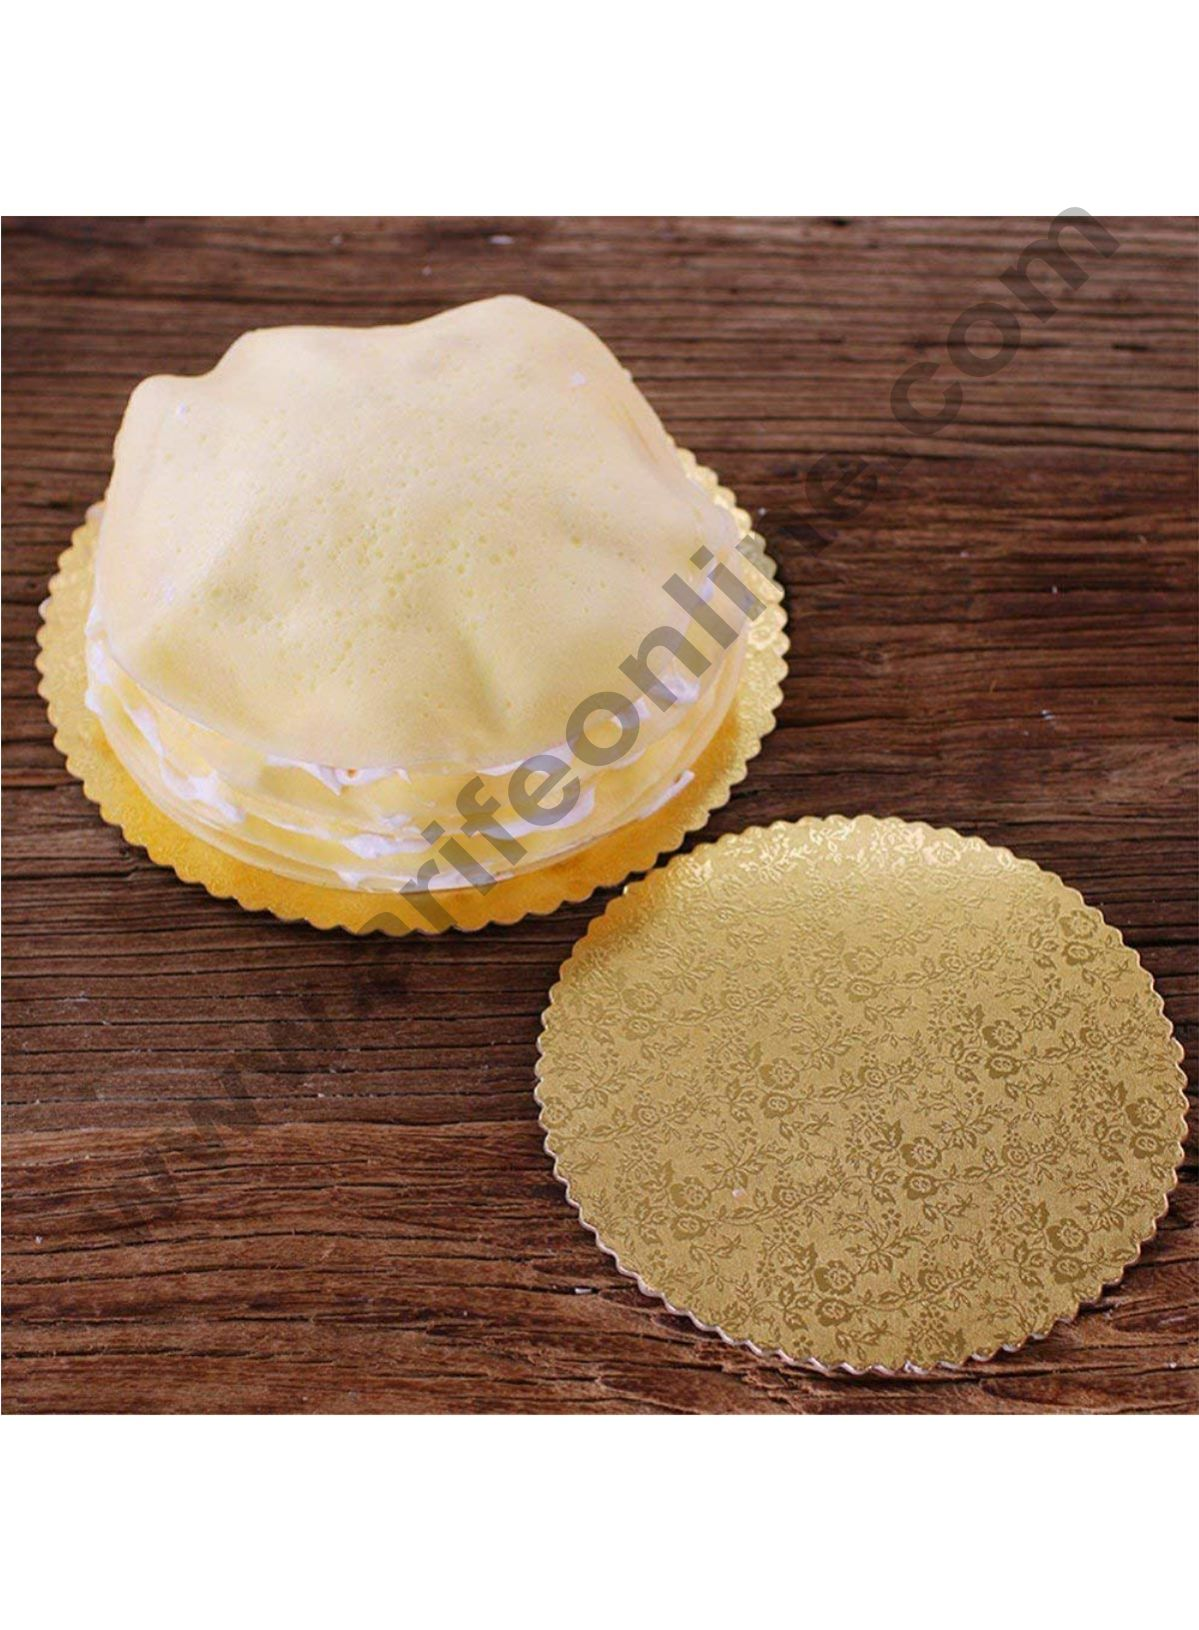 Cake Decor Gold Design Flower Print Glossy Corrugated Cake Board Base 8 Inch Diameter for Half Kg Cakes- Pack of 10Pcs